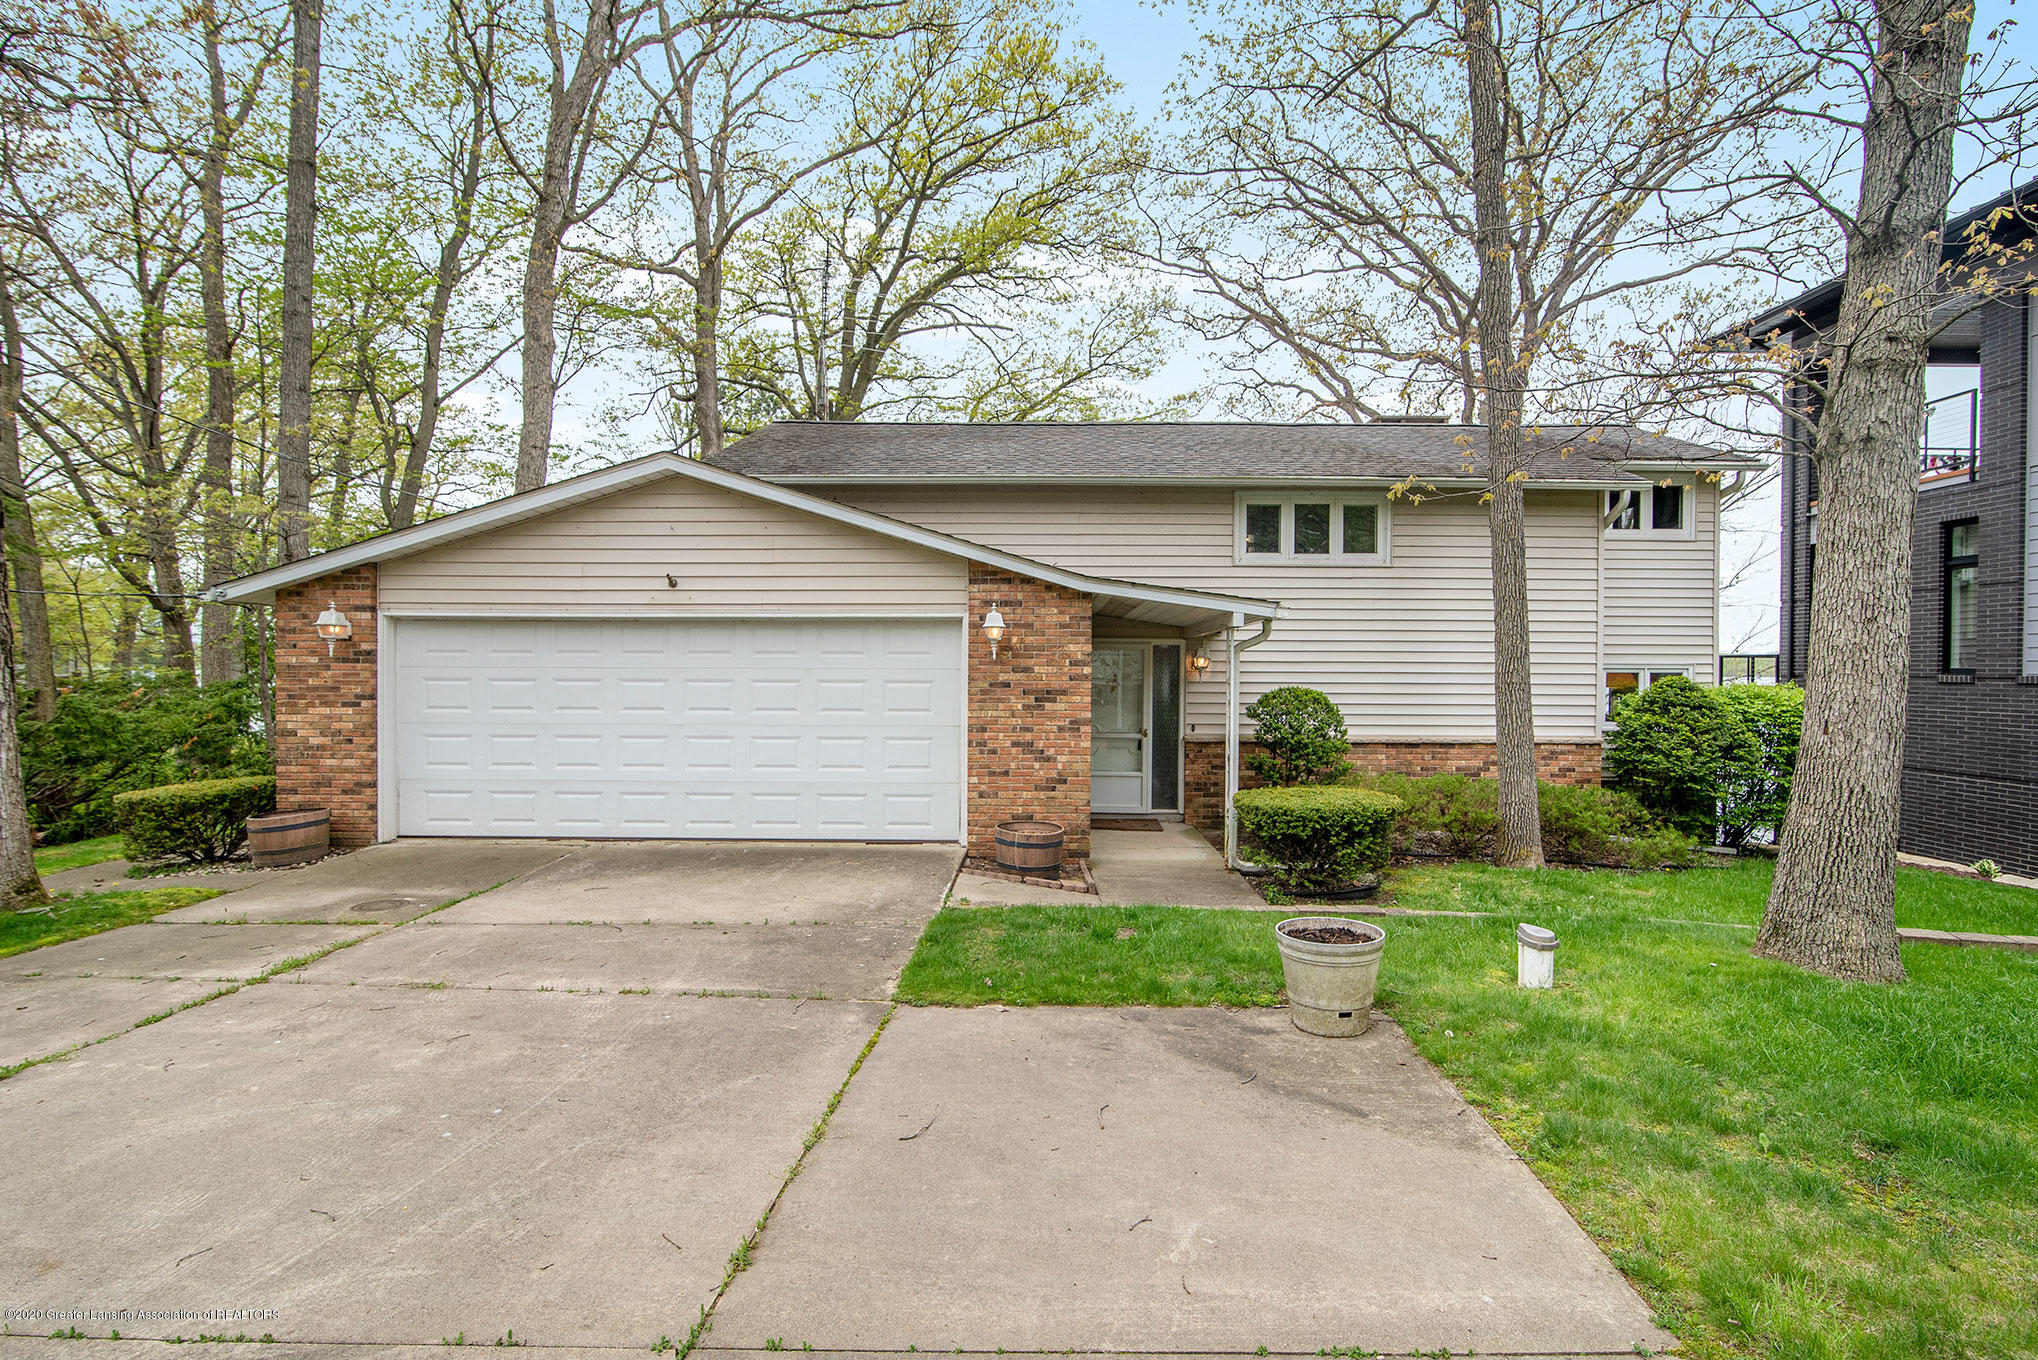 2051 Country Club Way - 1 - 1